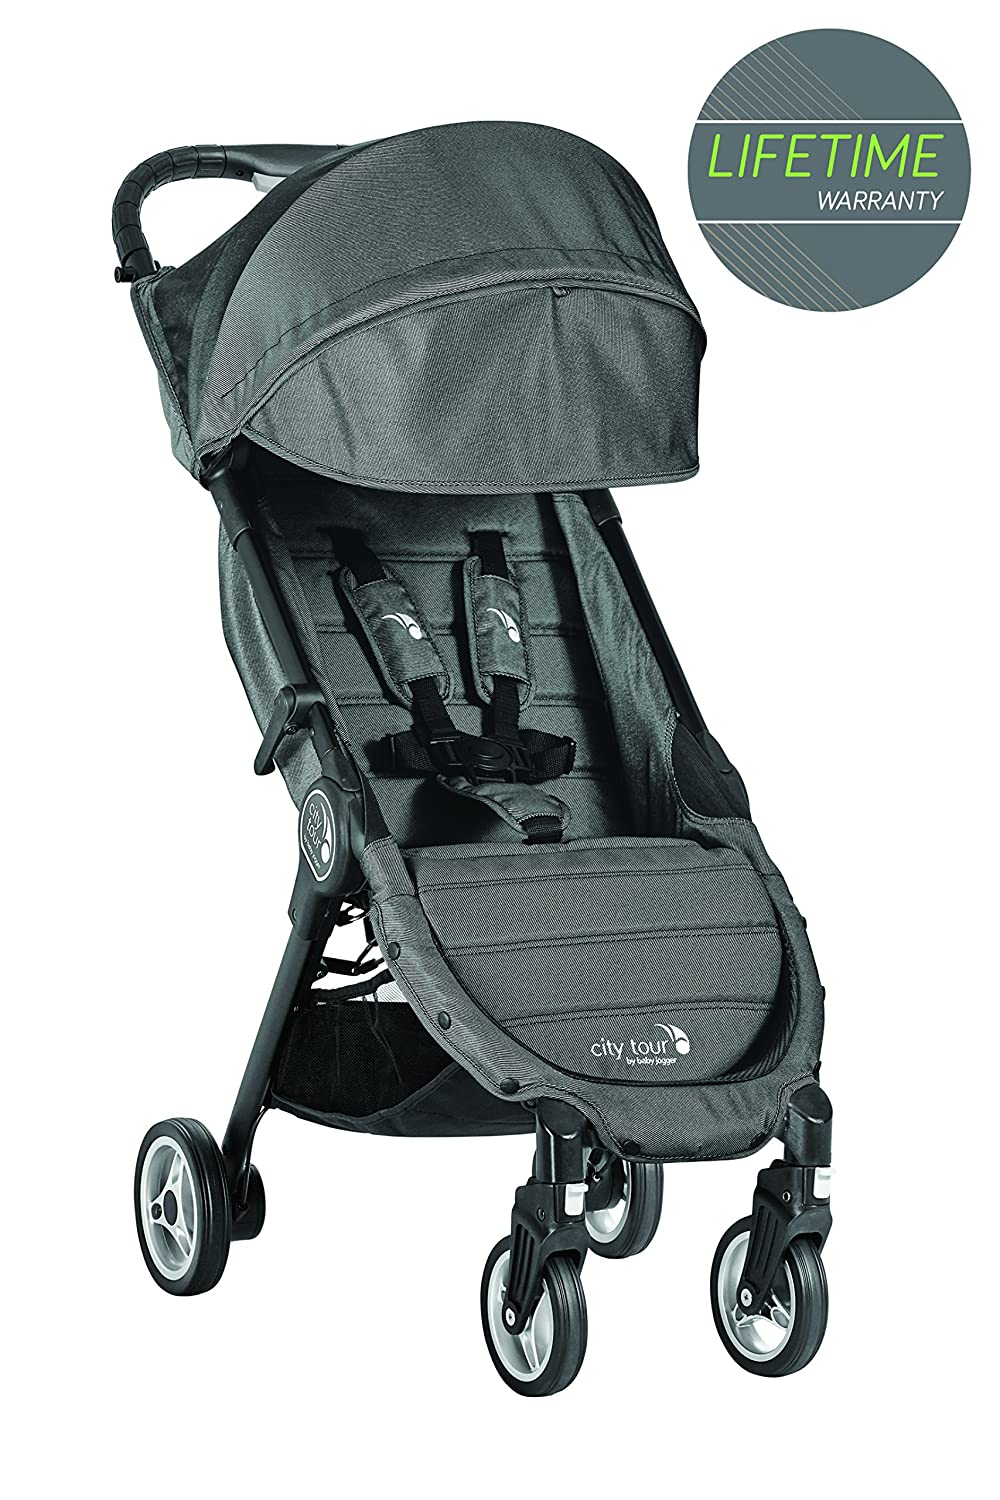 Baby Jogger City Tour Compact Fold Stroller Charcoal Kooltrade 17-26-021